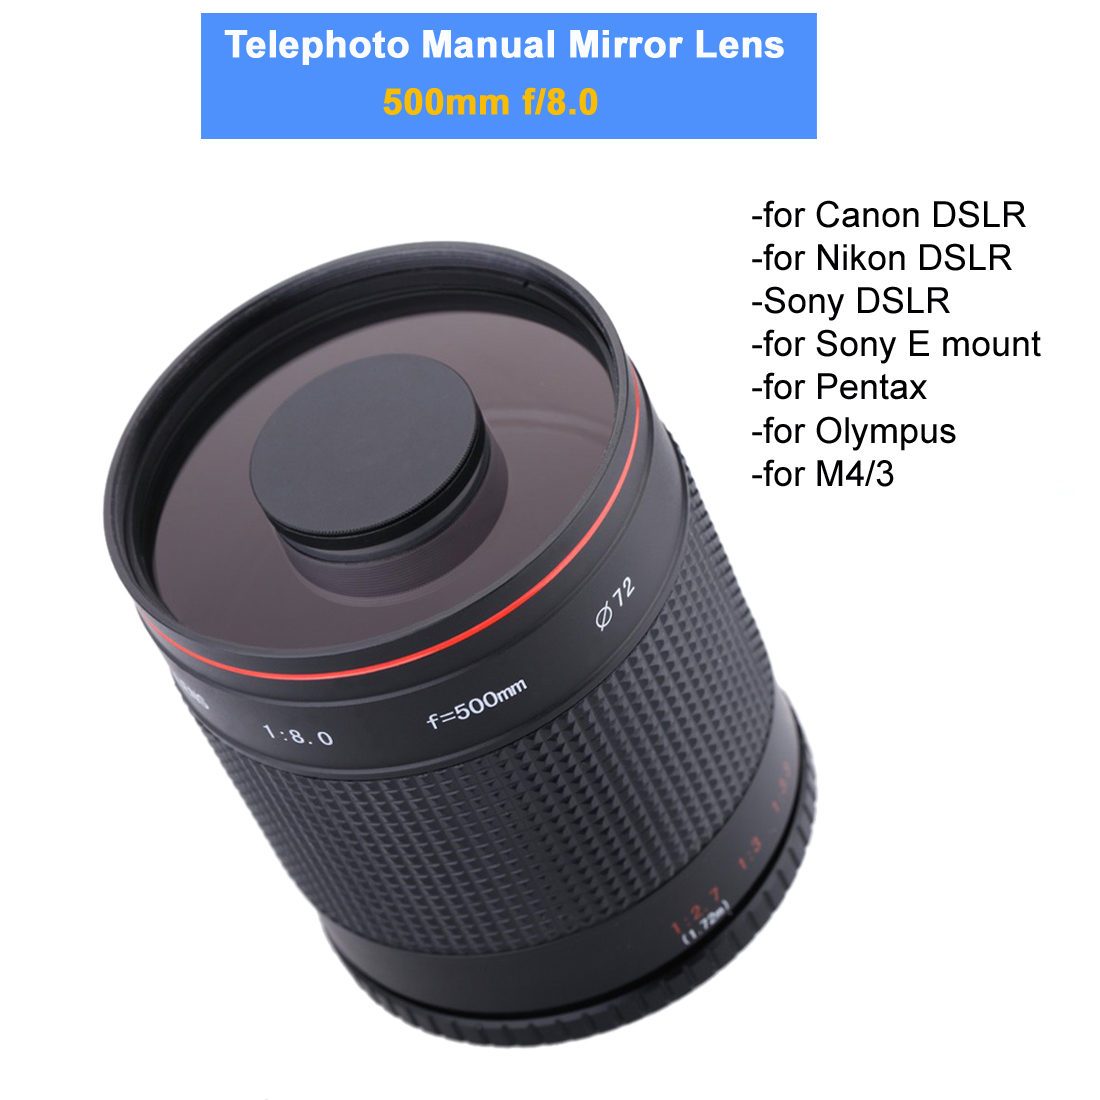 500mm F/8.0 Camera Telephoto Manual Mirror Lens+T2 Mount Adapter for Canon Nikon Pentax Olympus <font><b>Sony</b></font> <font><b>A6500</b></font> A7RII M4/3 GH5 DSLR image